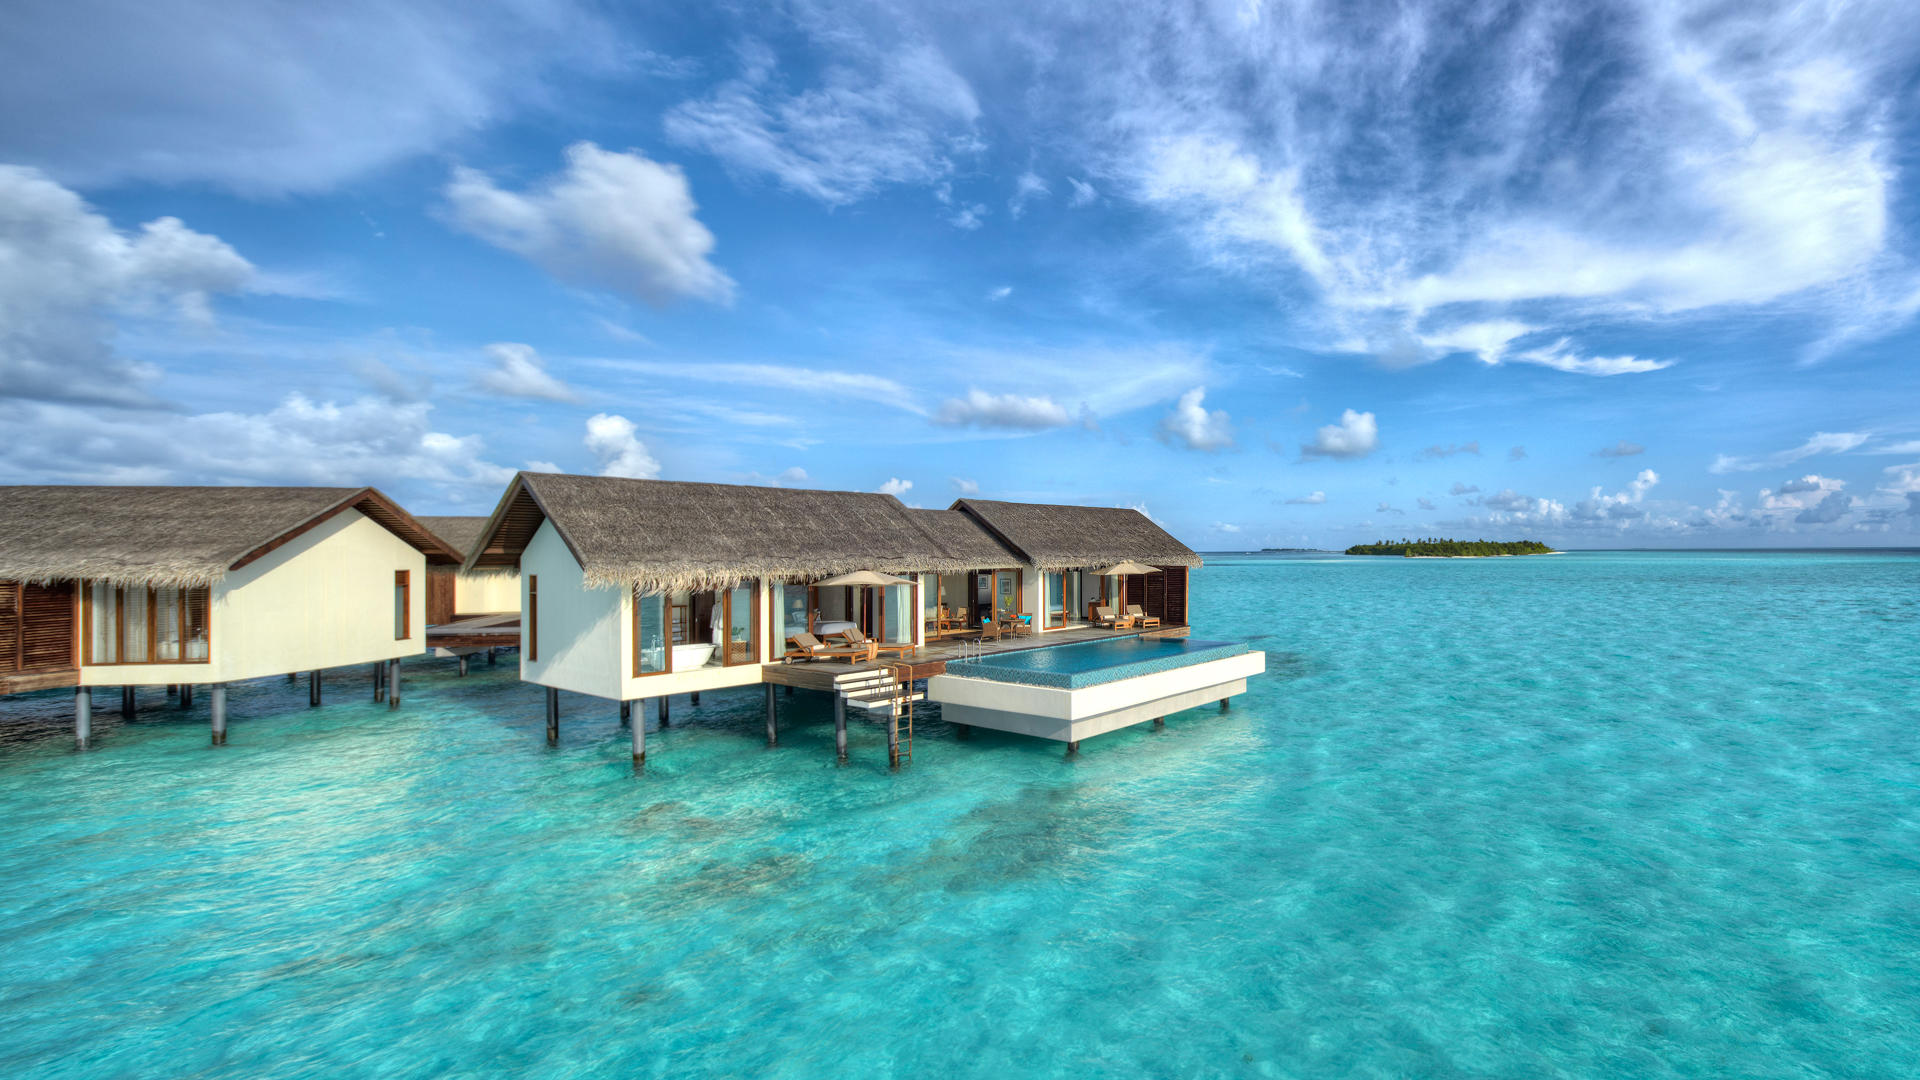 Cenizaro_ResidencesMaldives_Two-Bedroom-Water-Pool-Villa